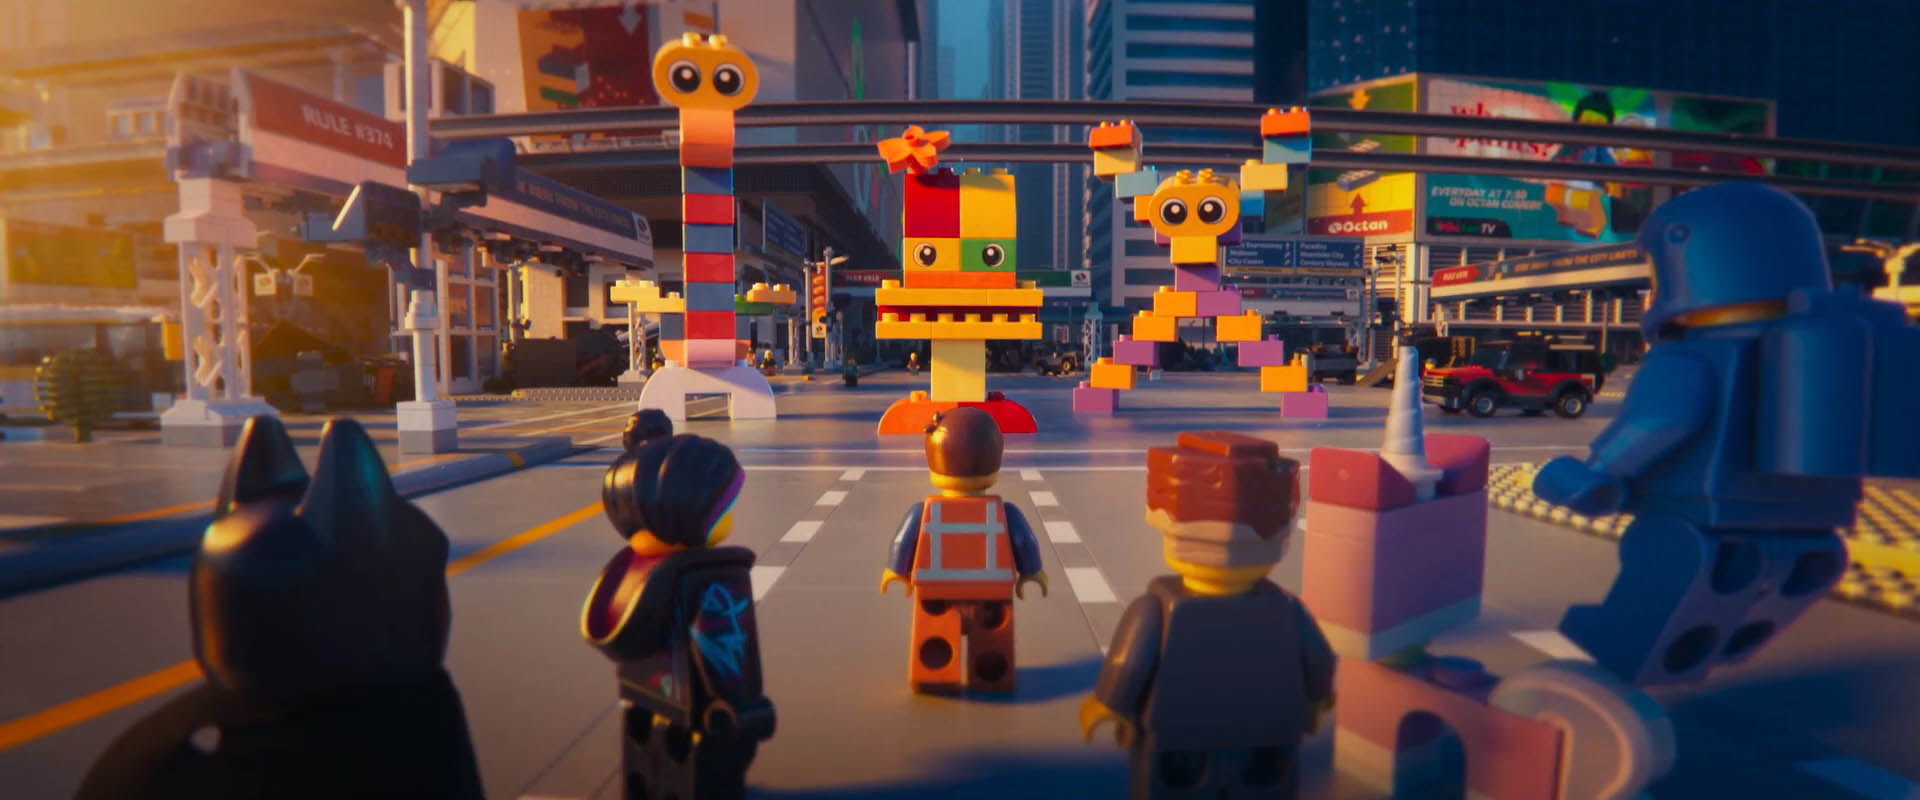 Image result for lego movie 2 trailer 3